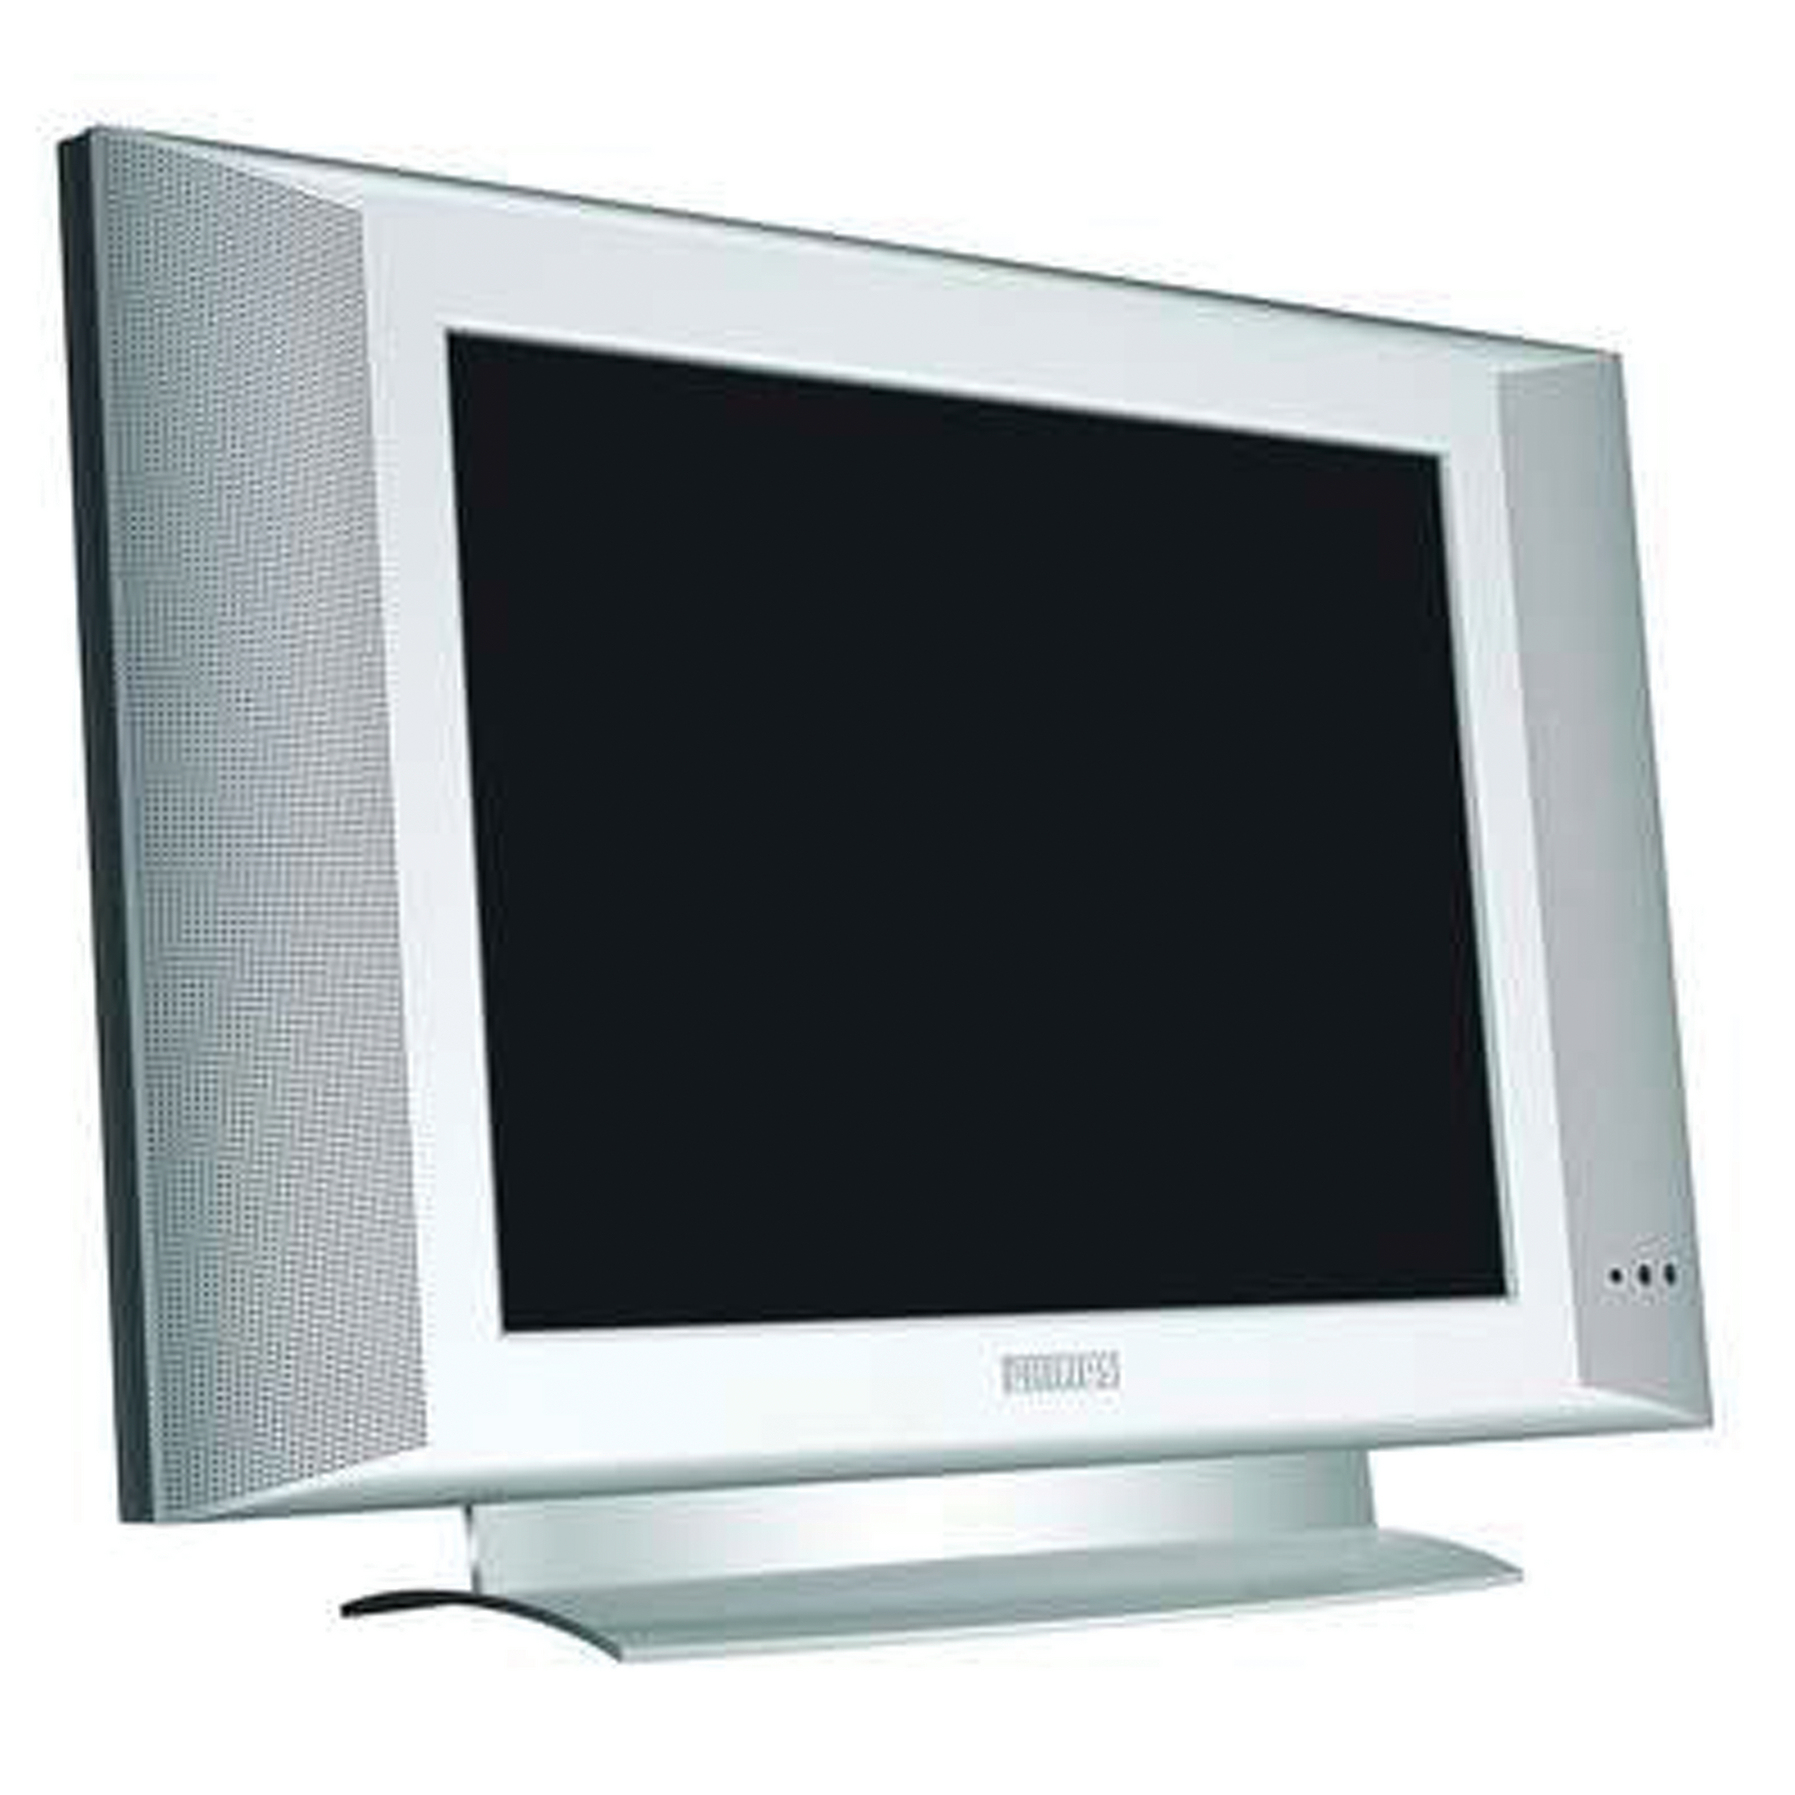 """Philips 23PF4310/01 23"""" Argento TV LCD"""